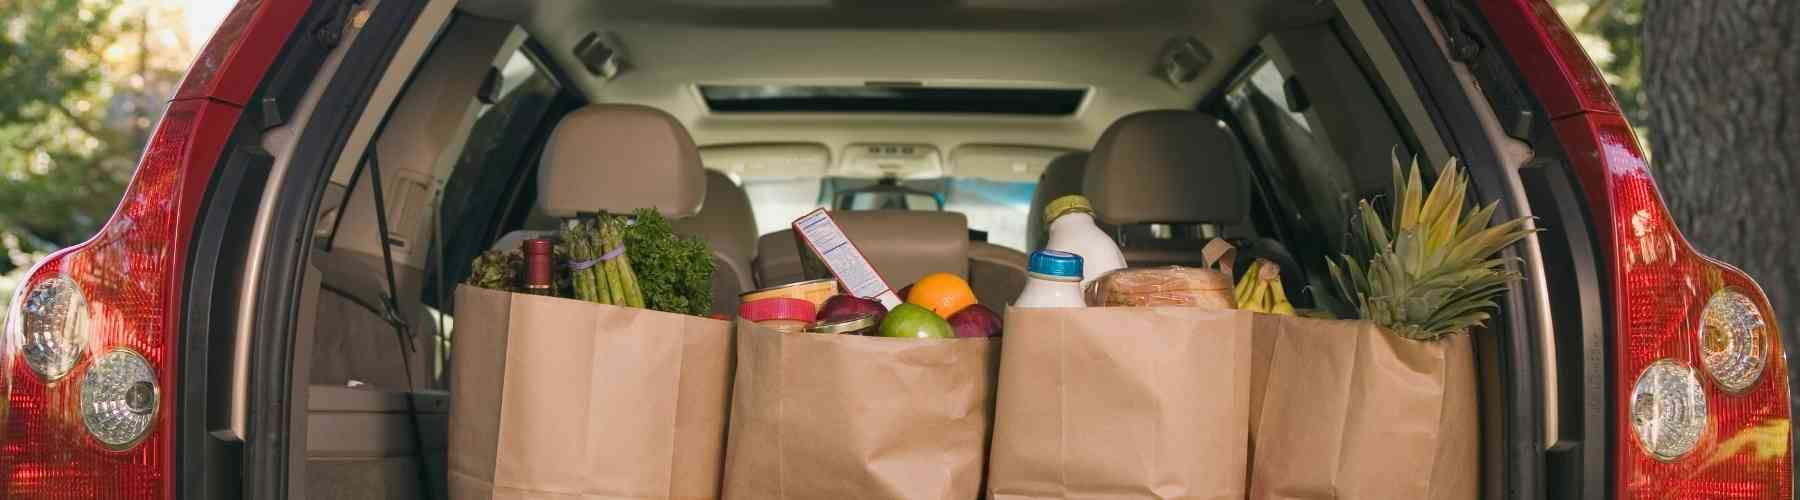 Grocery - Cut Expenses